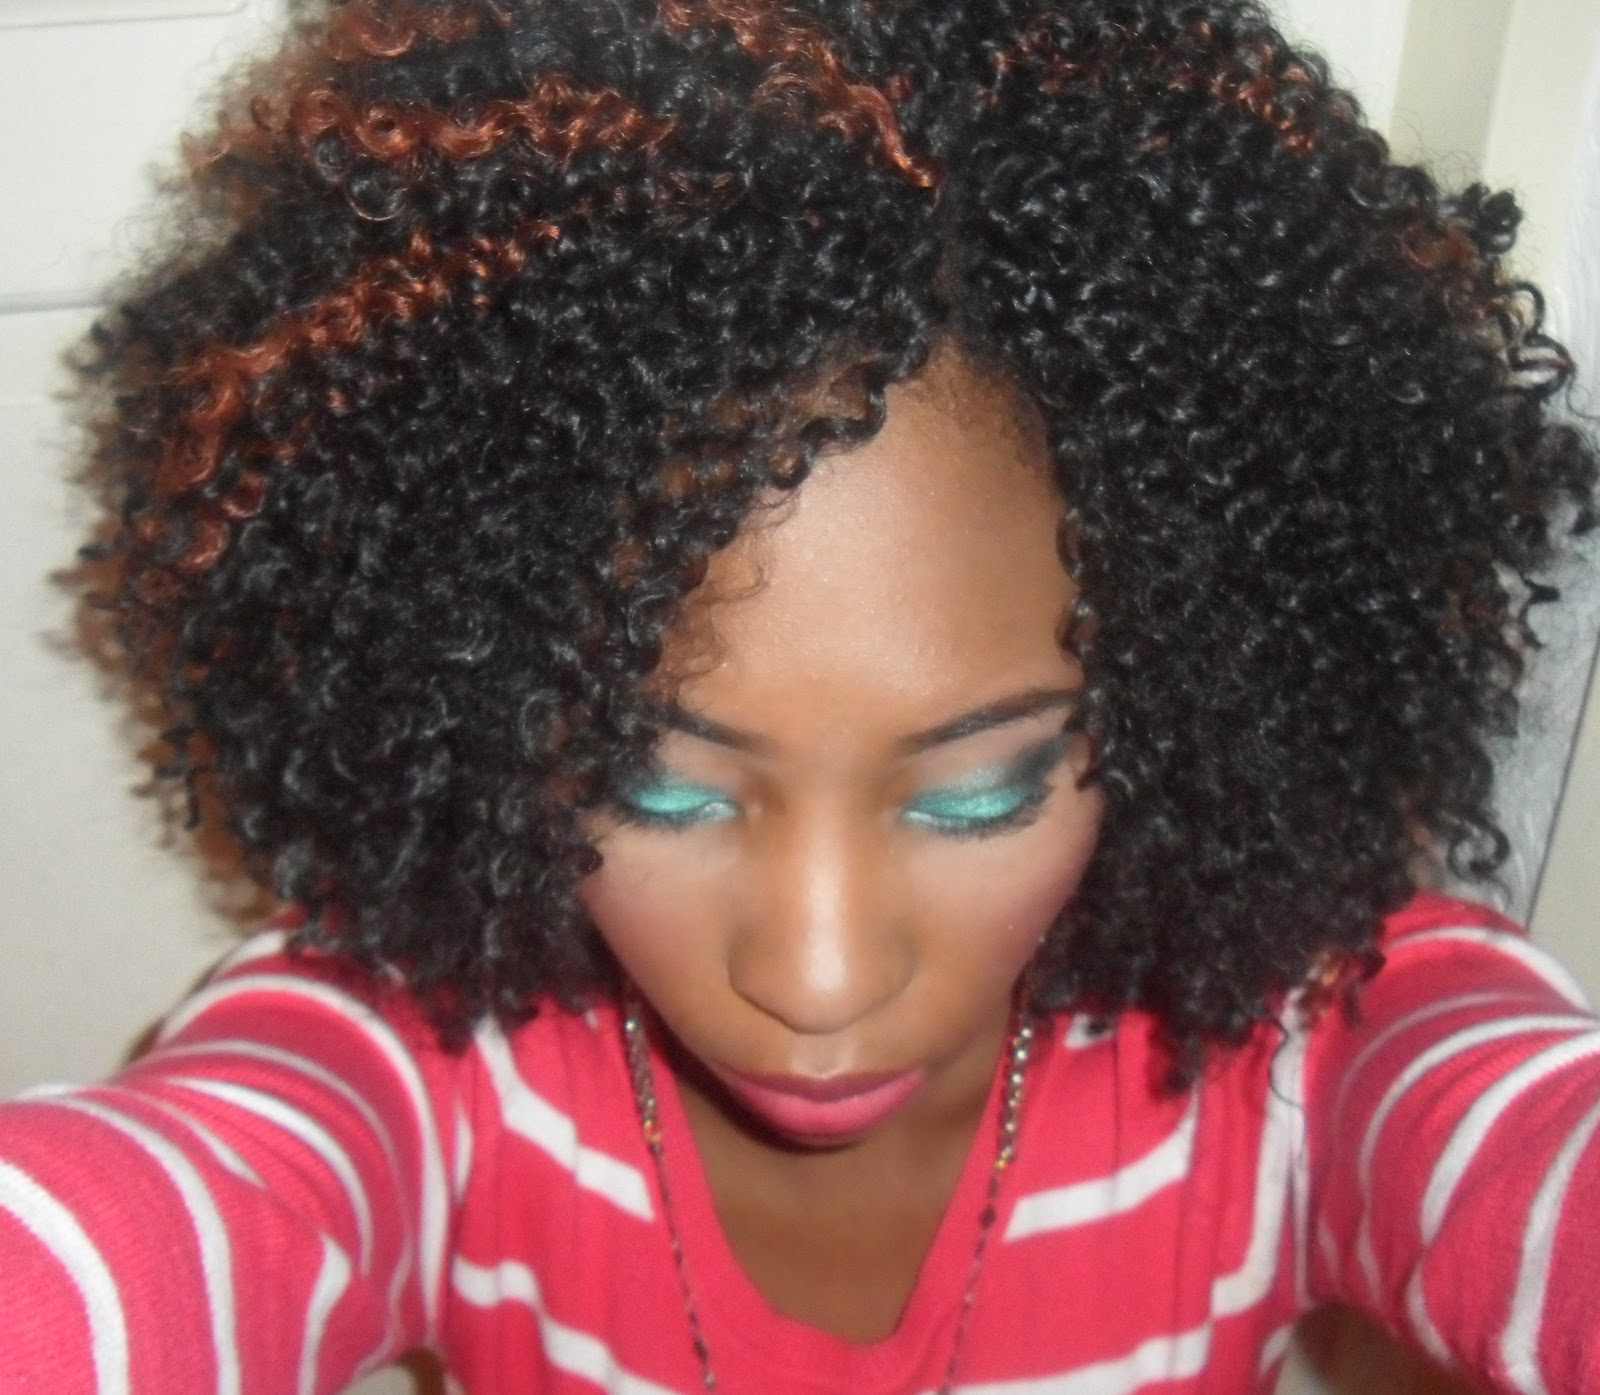 Crochet Braids With Curly Hair : Any questions, e-mail me at nubianpride@live.co.uk / tweet me @Ray ...